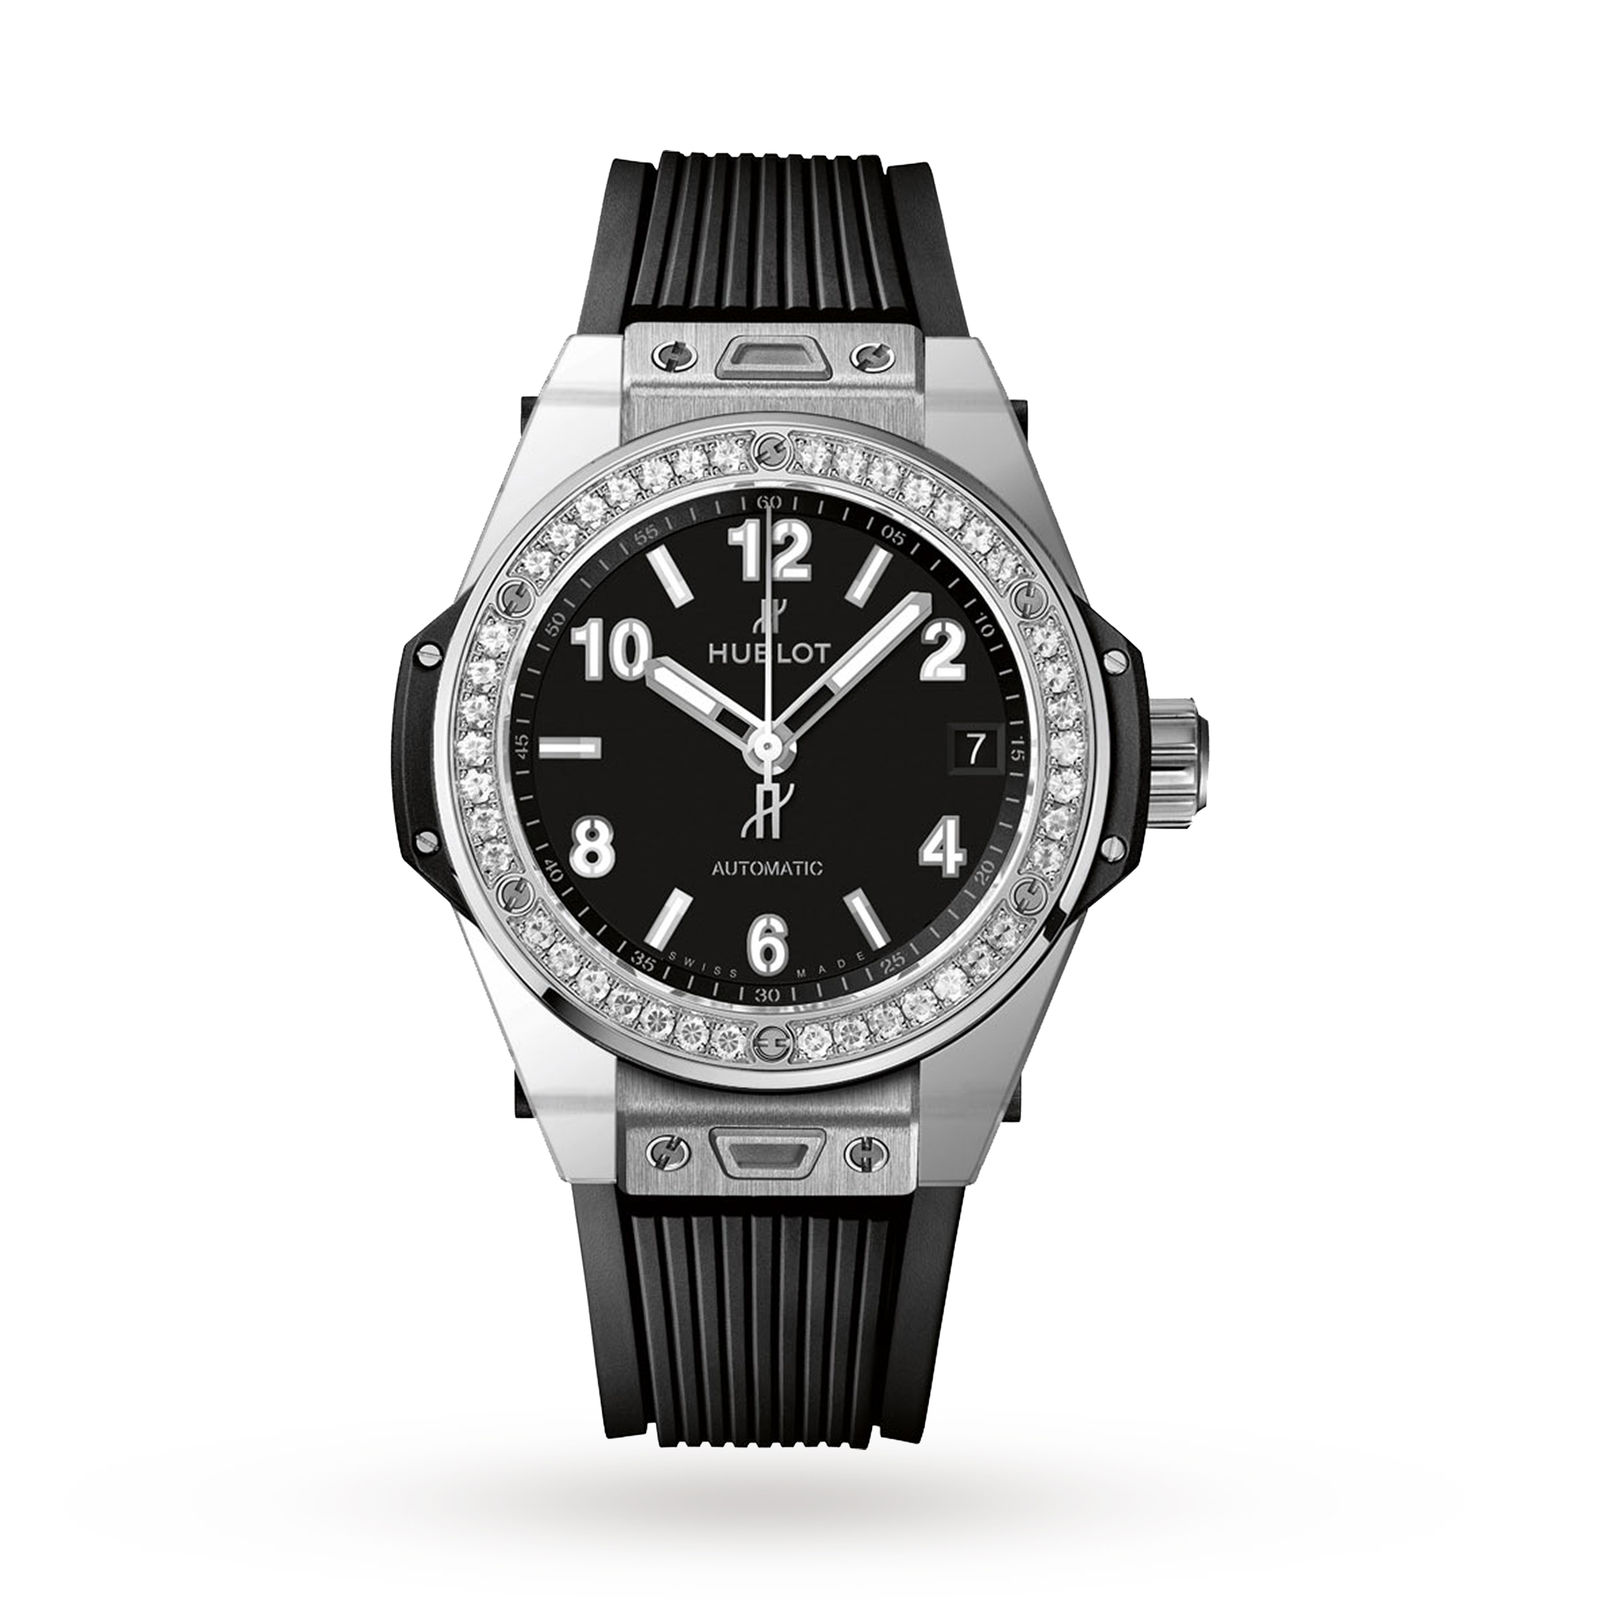 Hublot Big Bang Automatic Ladies Watch